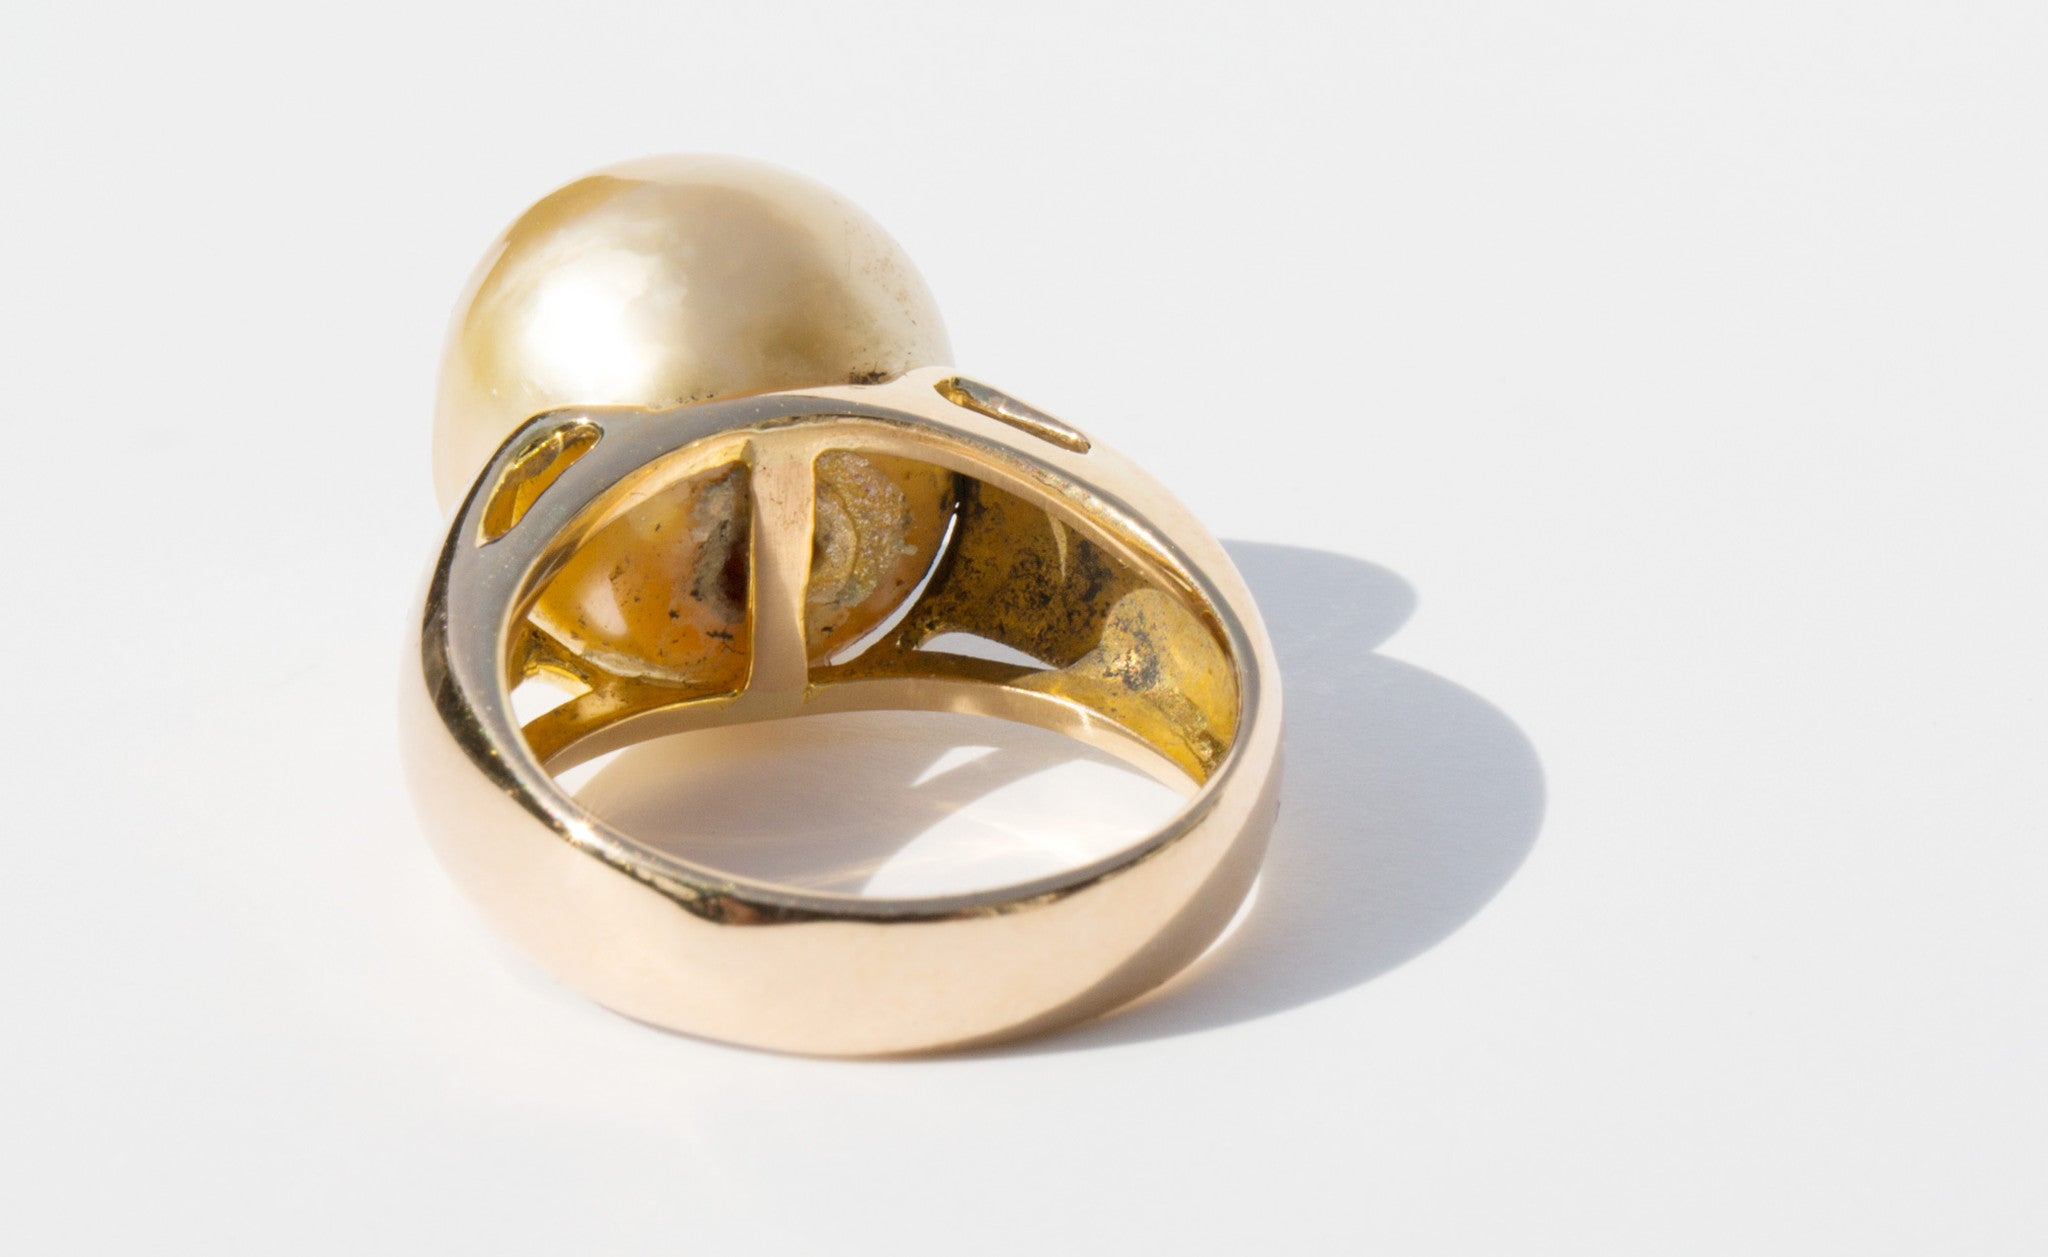 18k Tahitian South Sea Pearl Ring